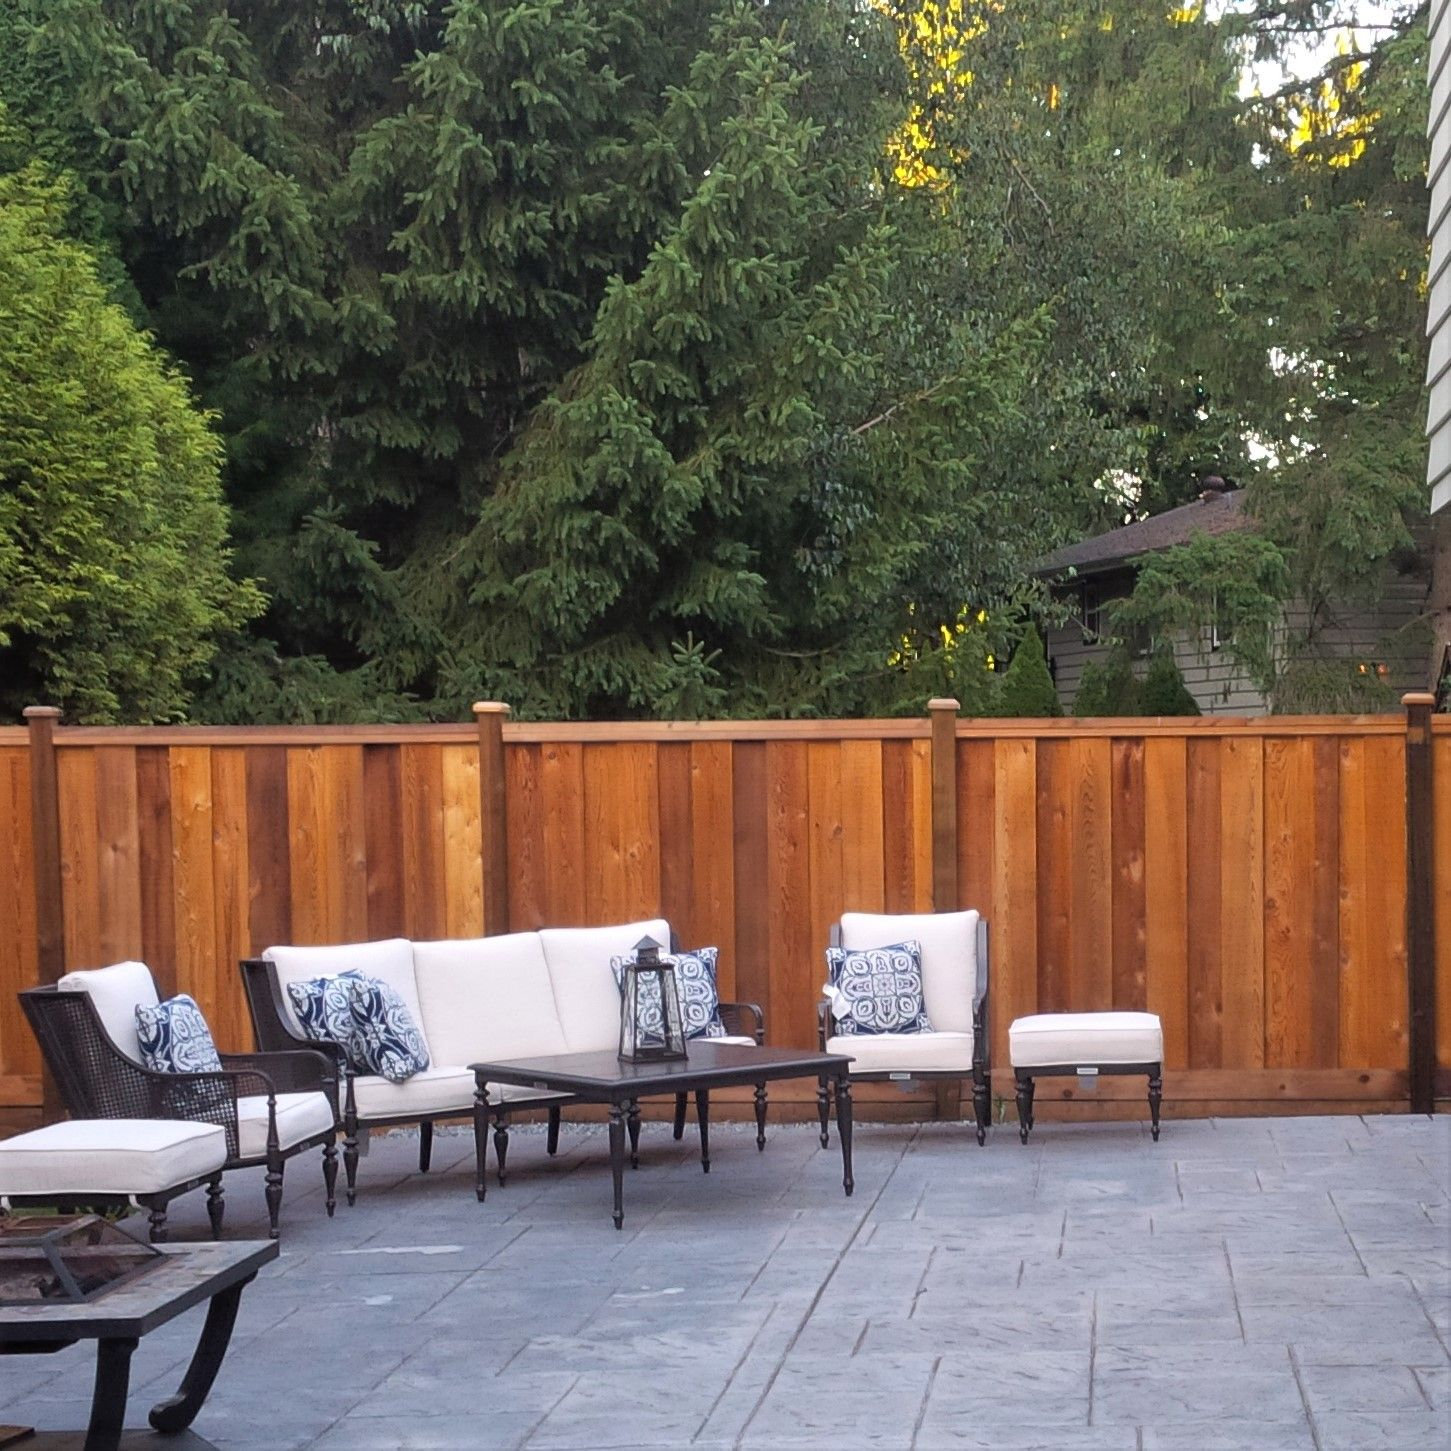 Our Cambridge Overlap Flow Through Fencing Style Makes A Beautiful Back  Drop For Any Outdoor Patio.